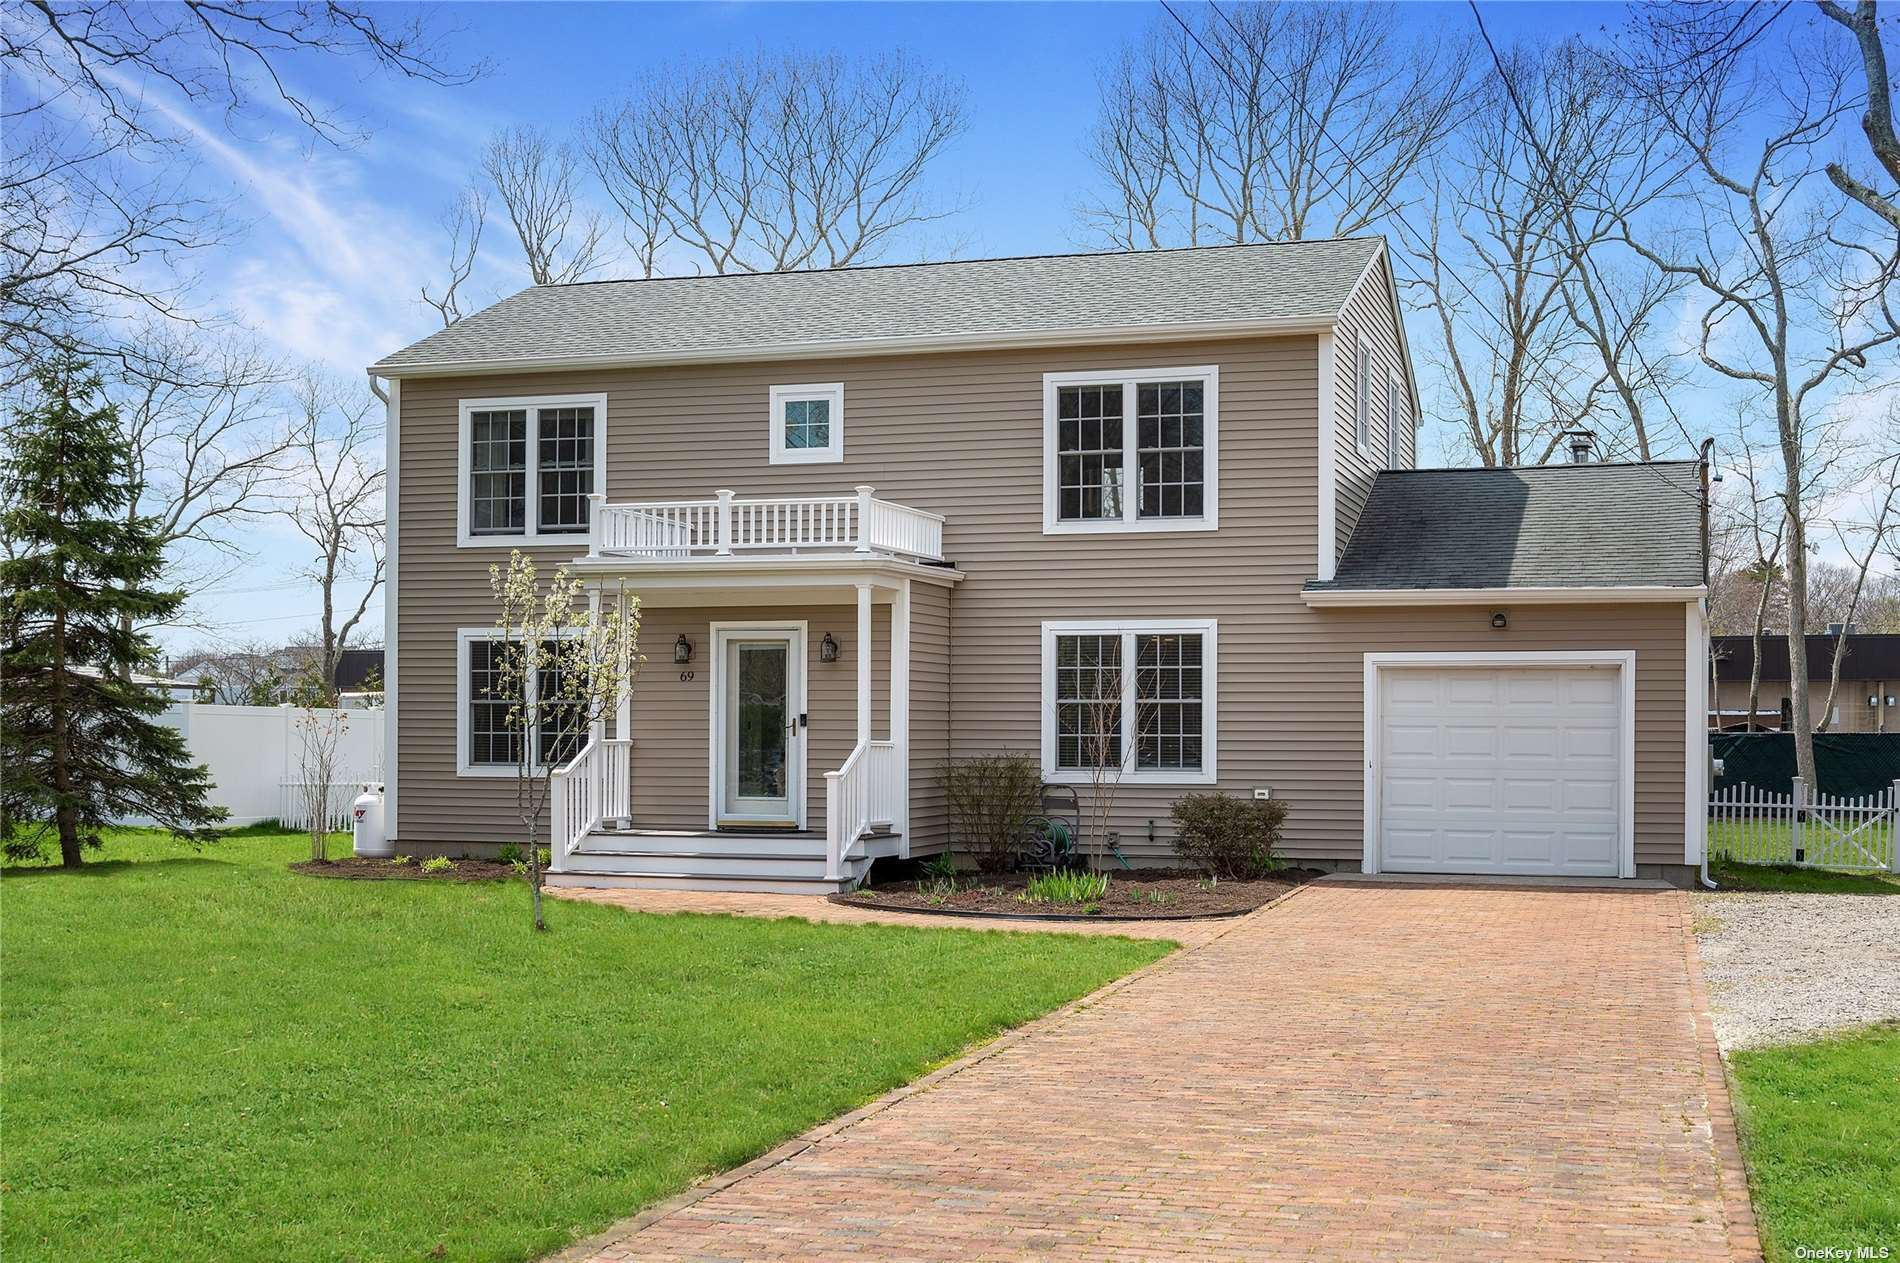 69 Hazelwood Avenue, Westhampton Beach, NY 11978 - MLS#: 3308013